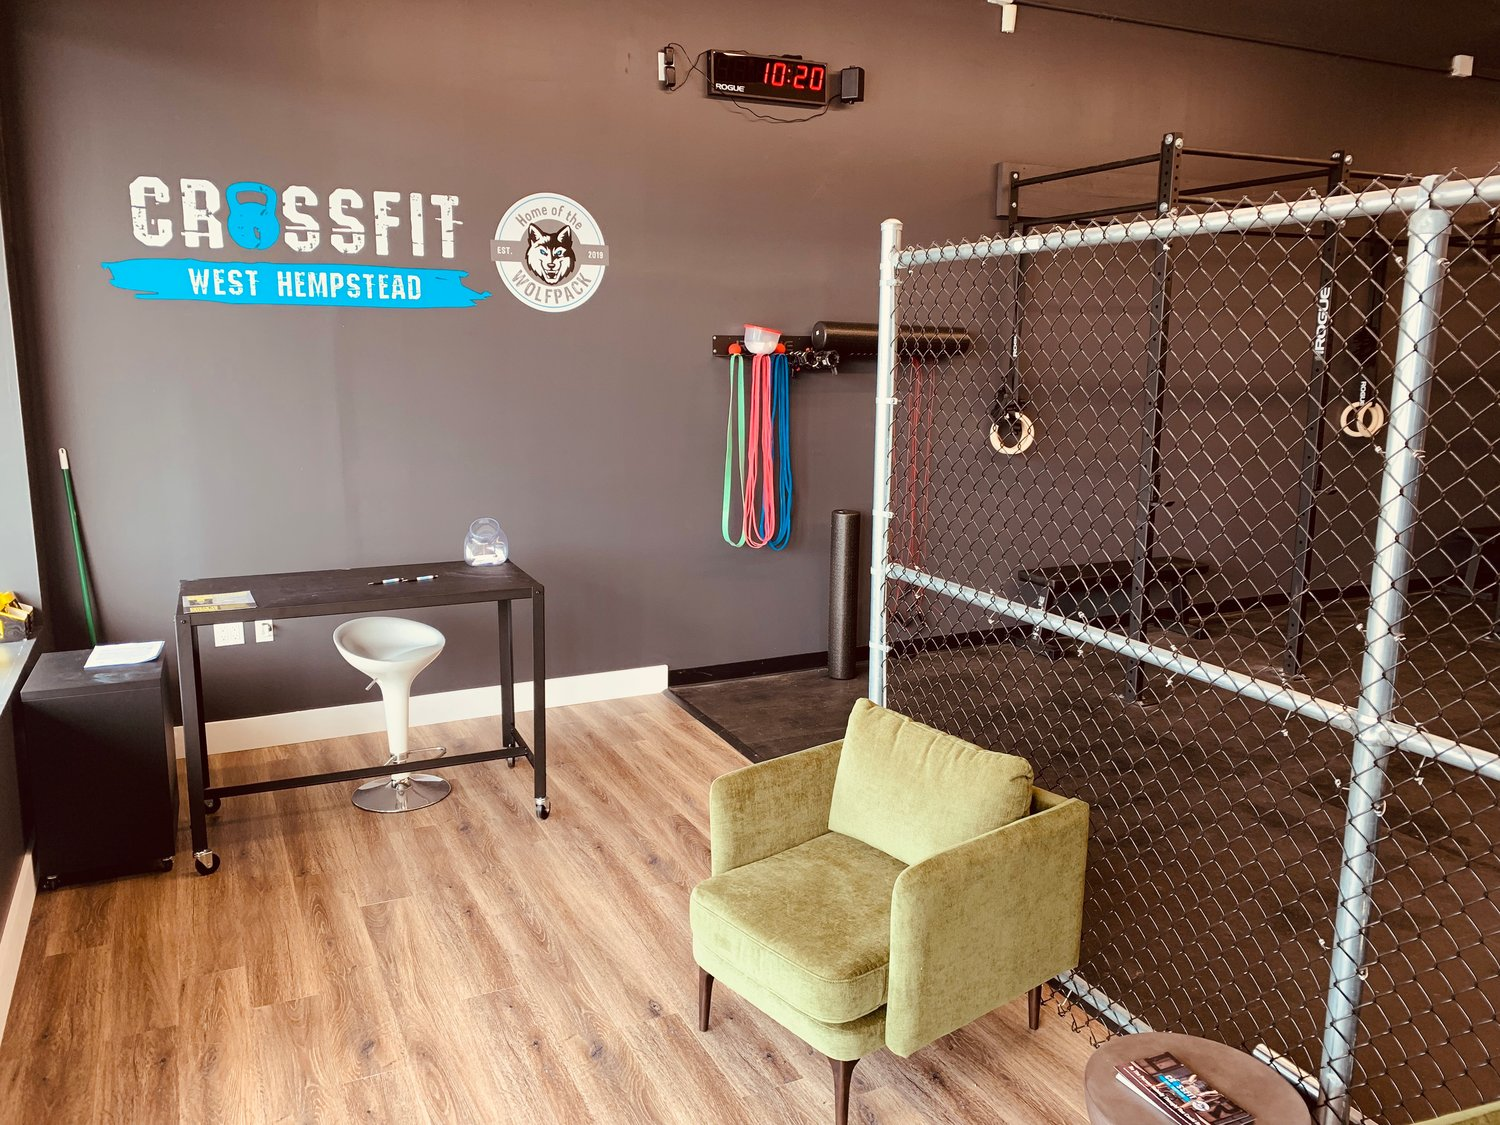 Wolfpack will take place at CrossFit West Hempstead starting on Aug. 5.